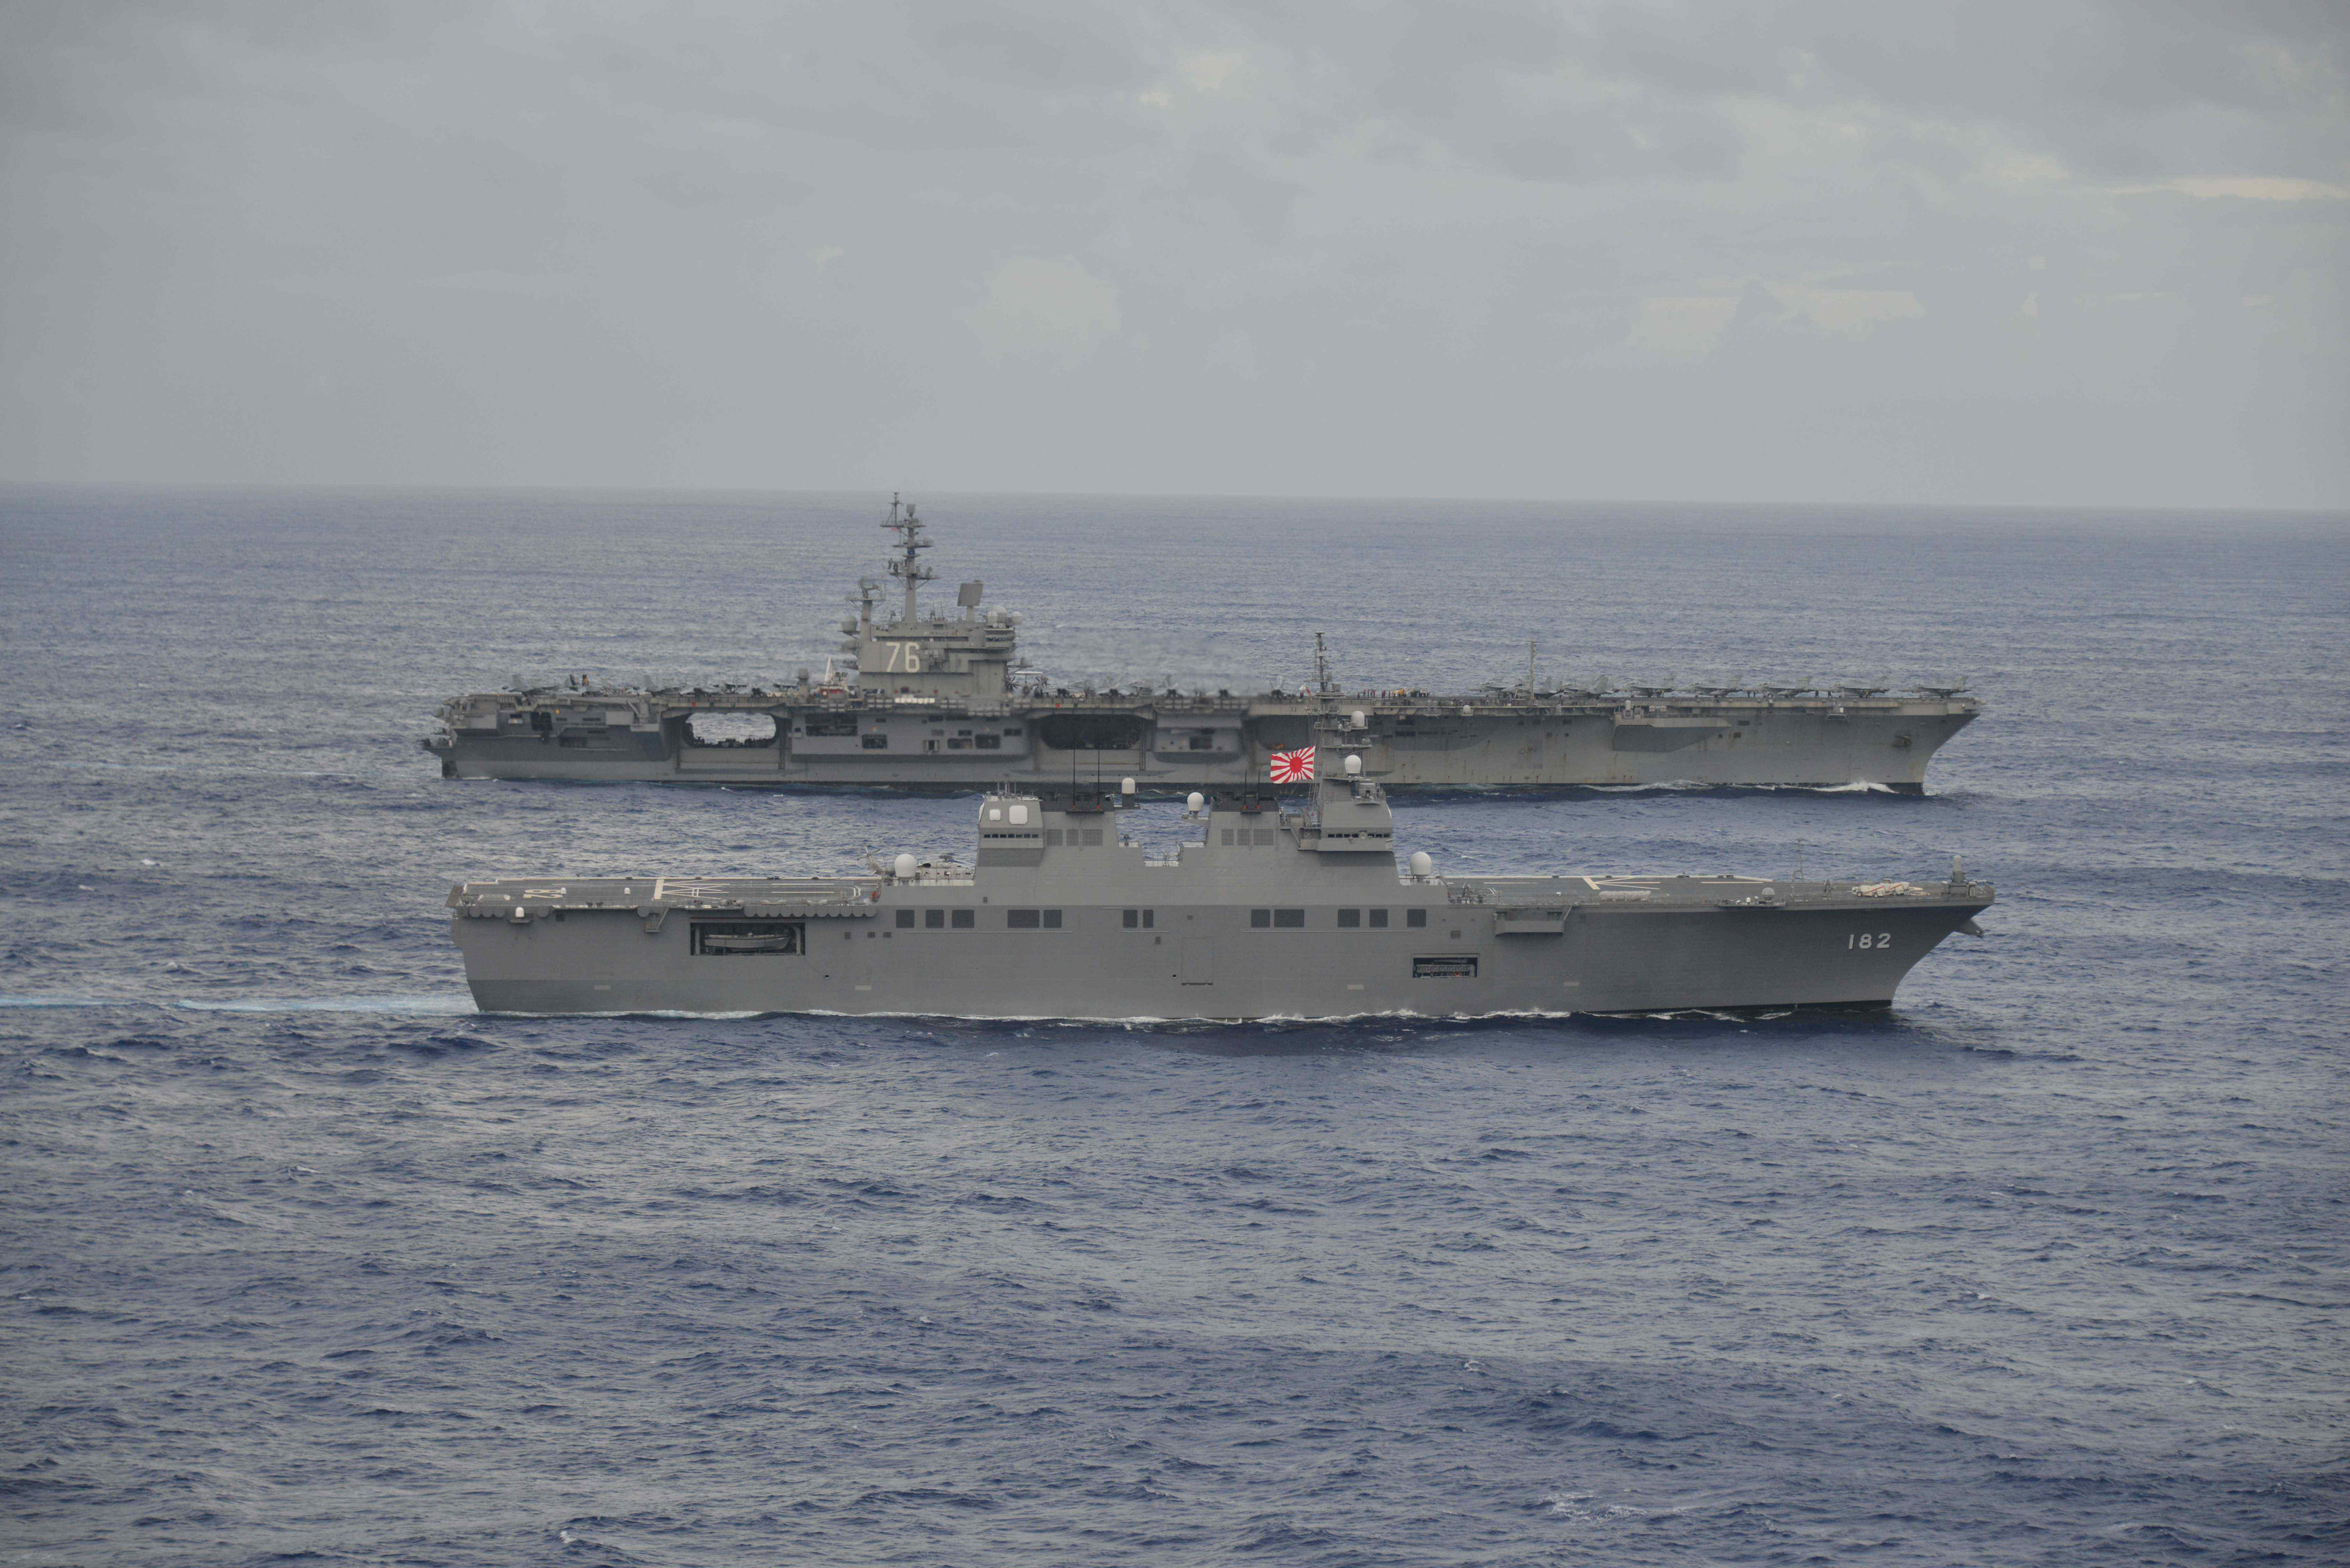 USS Ronald Reagan (rear), a Nimitz-class nuclear-powered supercarrier, sails side-by-side with Japan Maritime Self-Defense Force's Hyuga-class helicopter destroyer Ise (DDH-182) during their joint military drill in the sea off Japan, in this photo released taken by Japan Maritime Self-Defense Force on September 14, 2017 and released on September 22, 2017. Picture taken September 14, 2017. Japan Maritime Self-Defense Force/HANDOUT via REUTERS